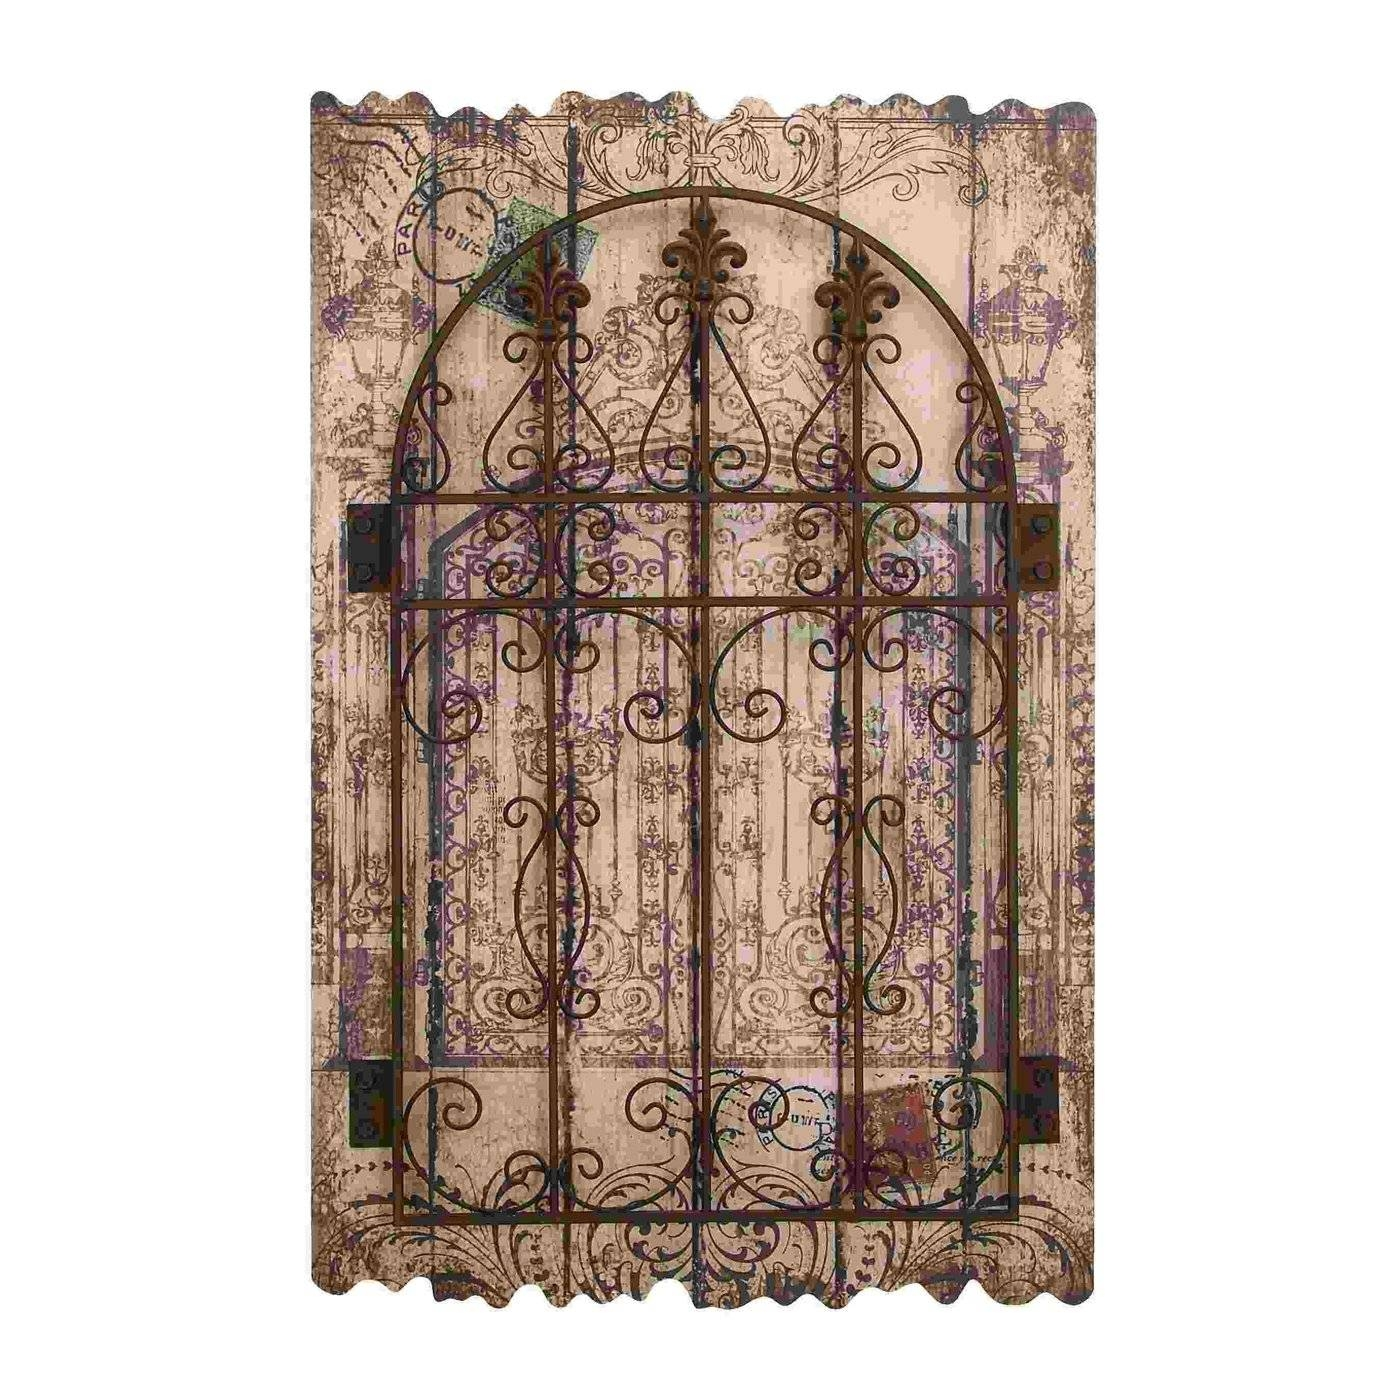 Home Design : Rustic Wood And Metal Wall Art Asian Large Rustic Inside Latest Asian Metal Wall Art (View 20 of 30)